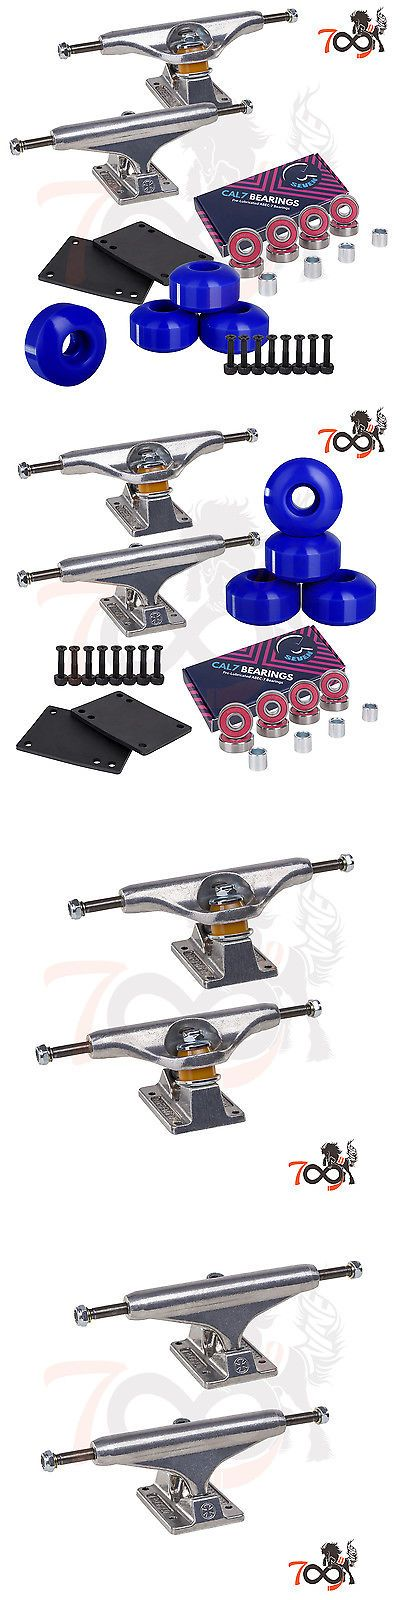 Wheels 165946: Independent 144 Skateboard Trucks Combo Abec 7 Bearing 52Mm Blue Wheels -> BUY IT NOW ONLY: $49.99 on eBay!